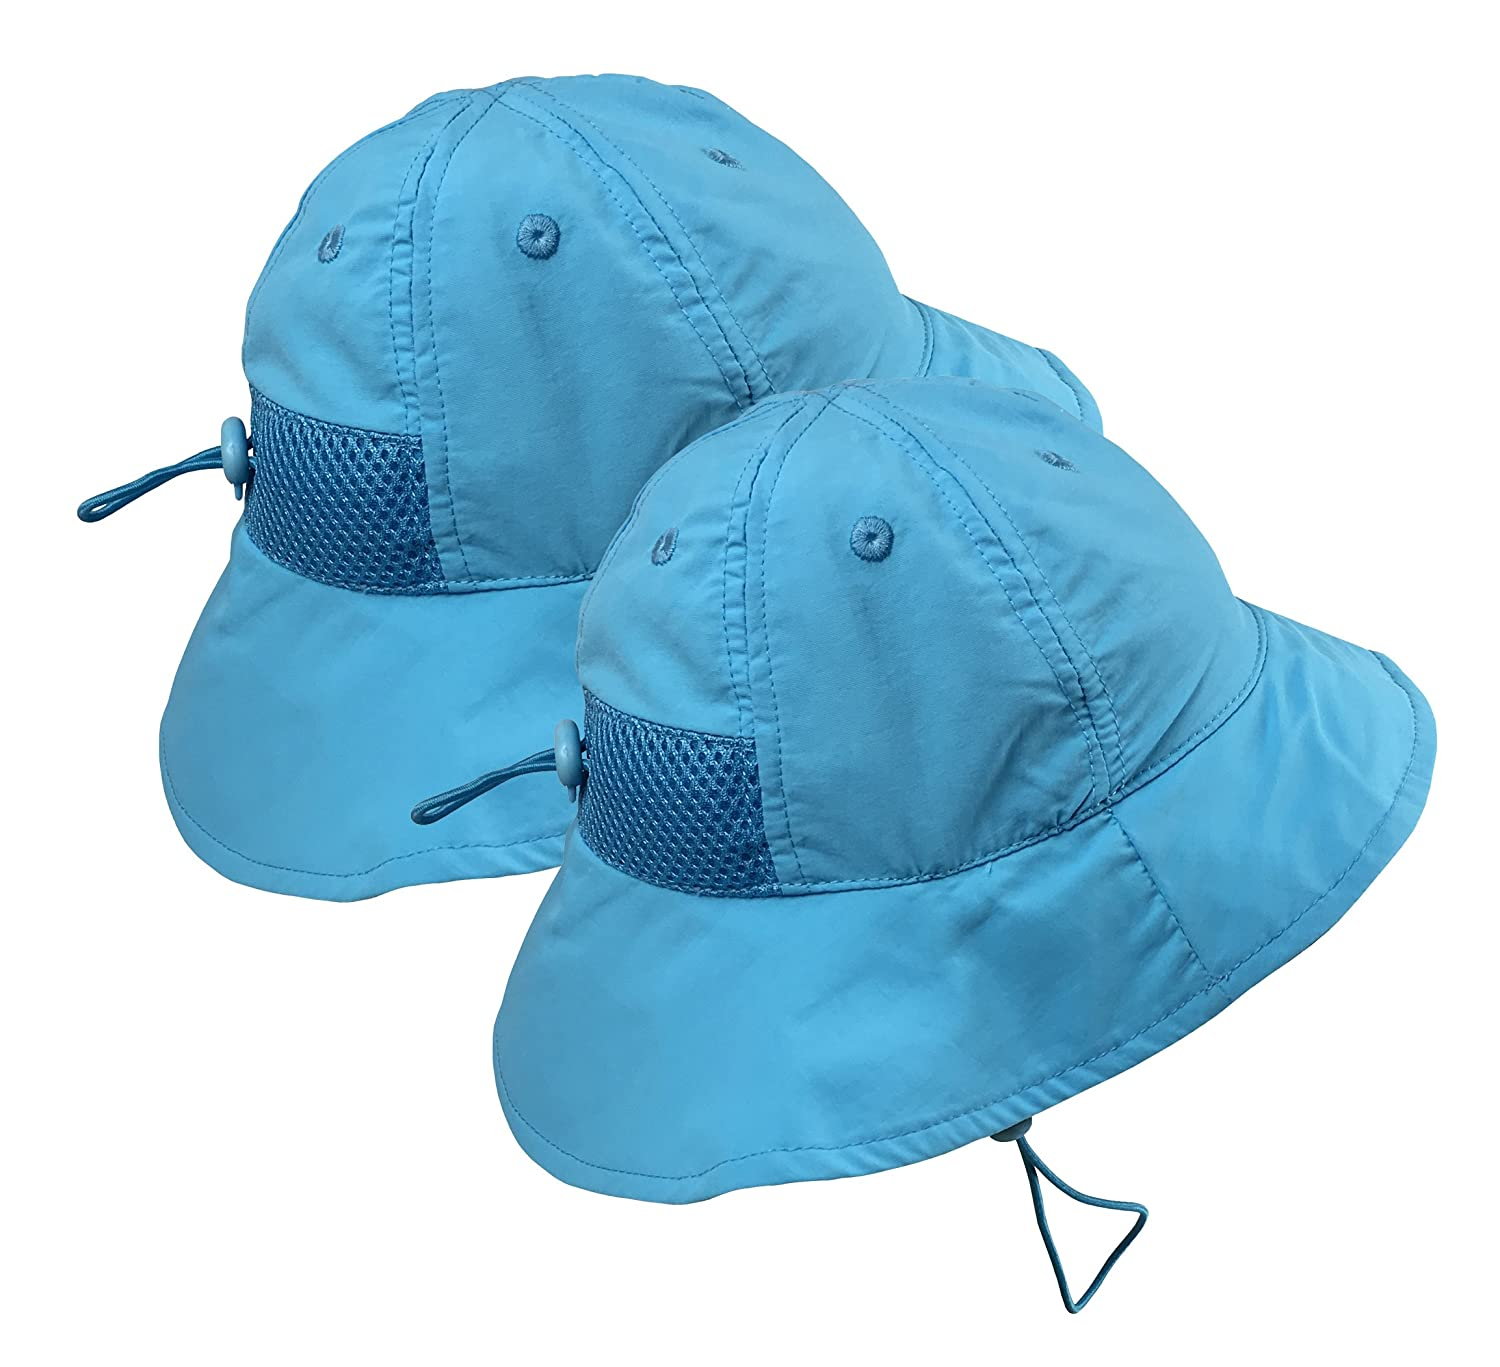 d479e422b73 N Ice Caps Kids and Baby SPF 50+ UV Protection Breathable Sun Hat ...